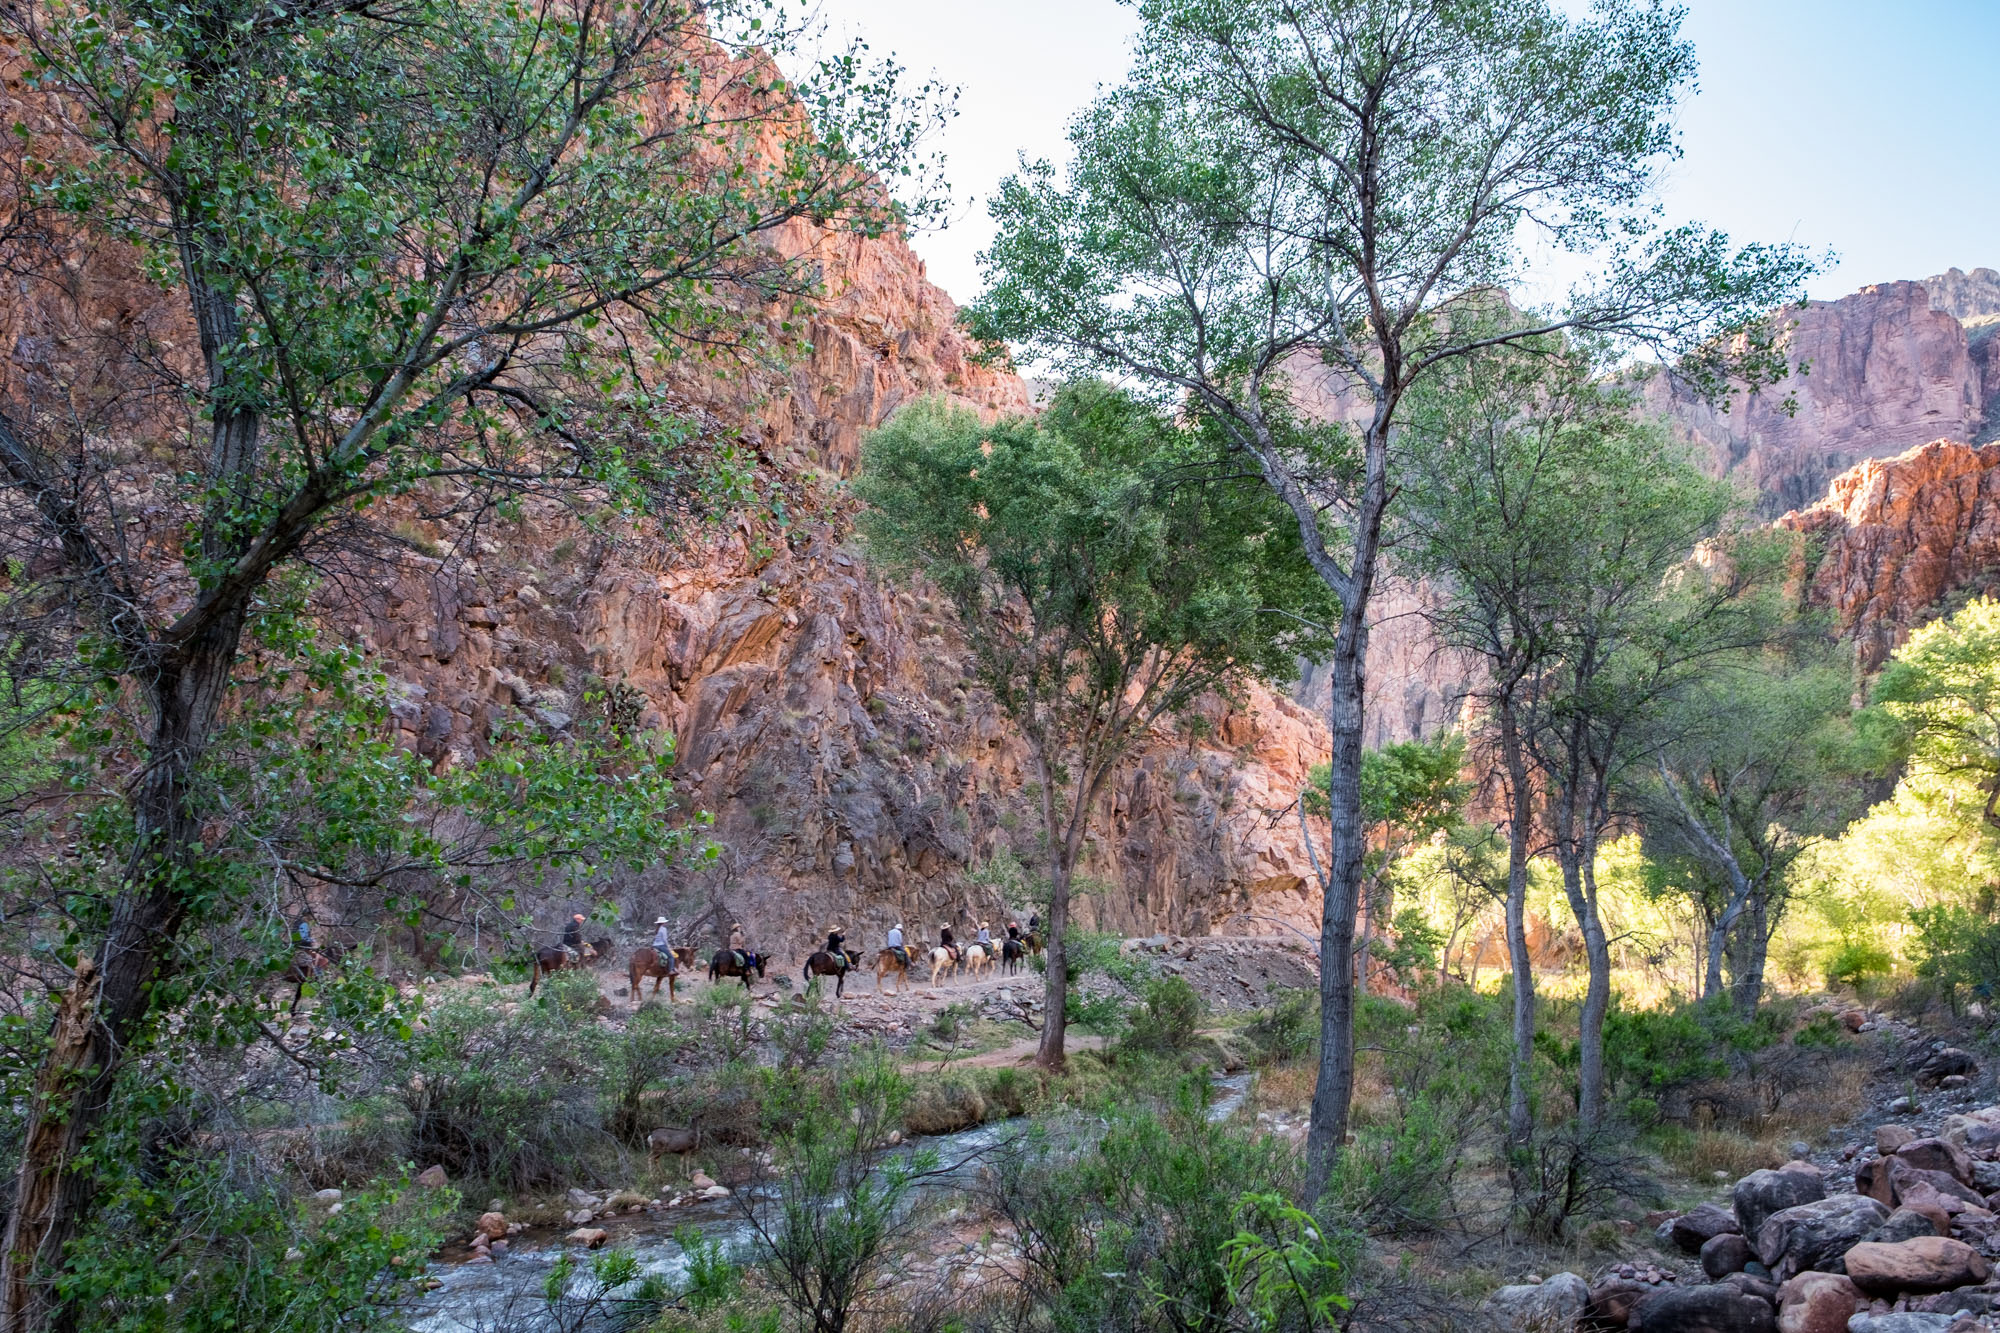 We had an early start the next morning to hike the 9.5 miles out along the Bright Angel Trail.